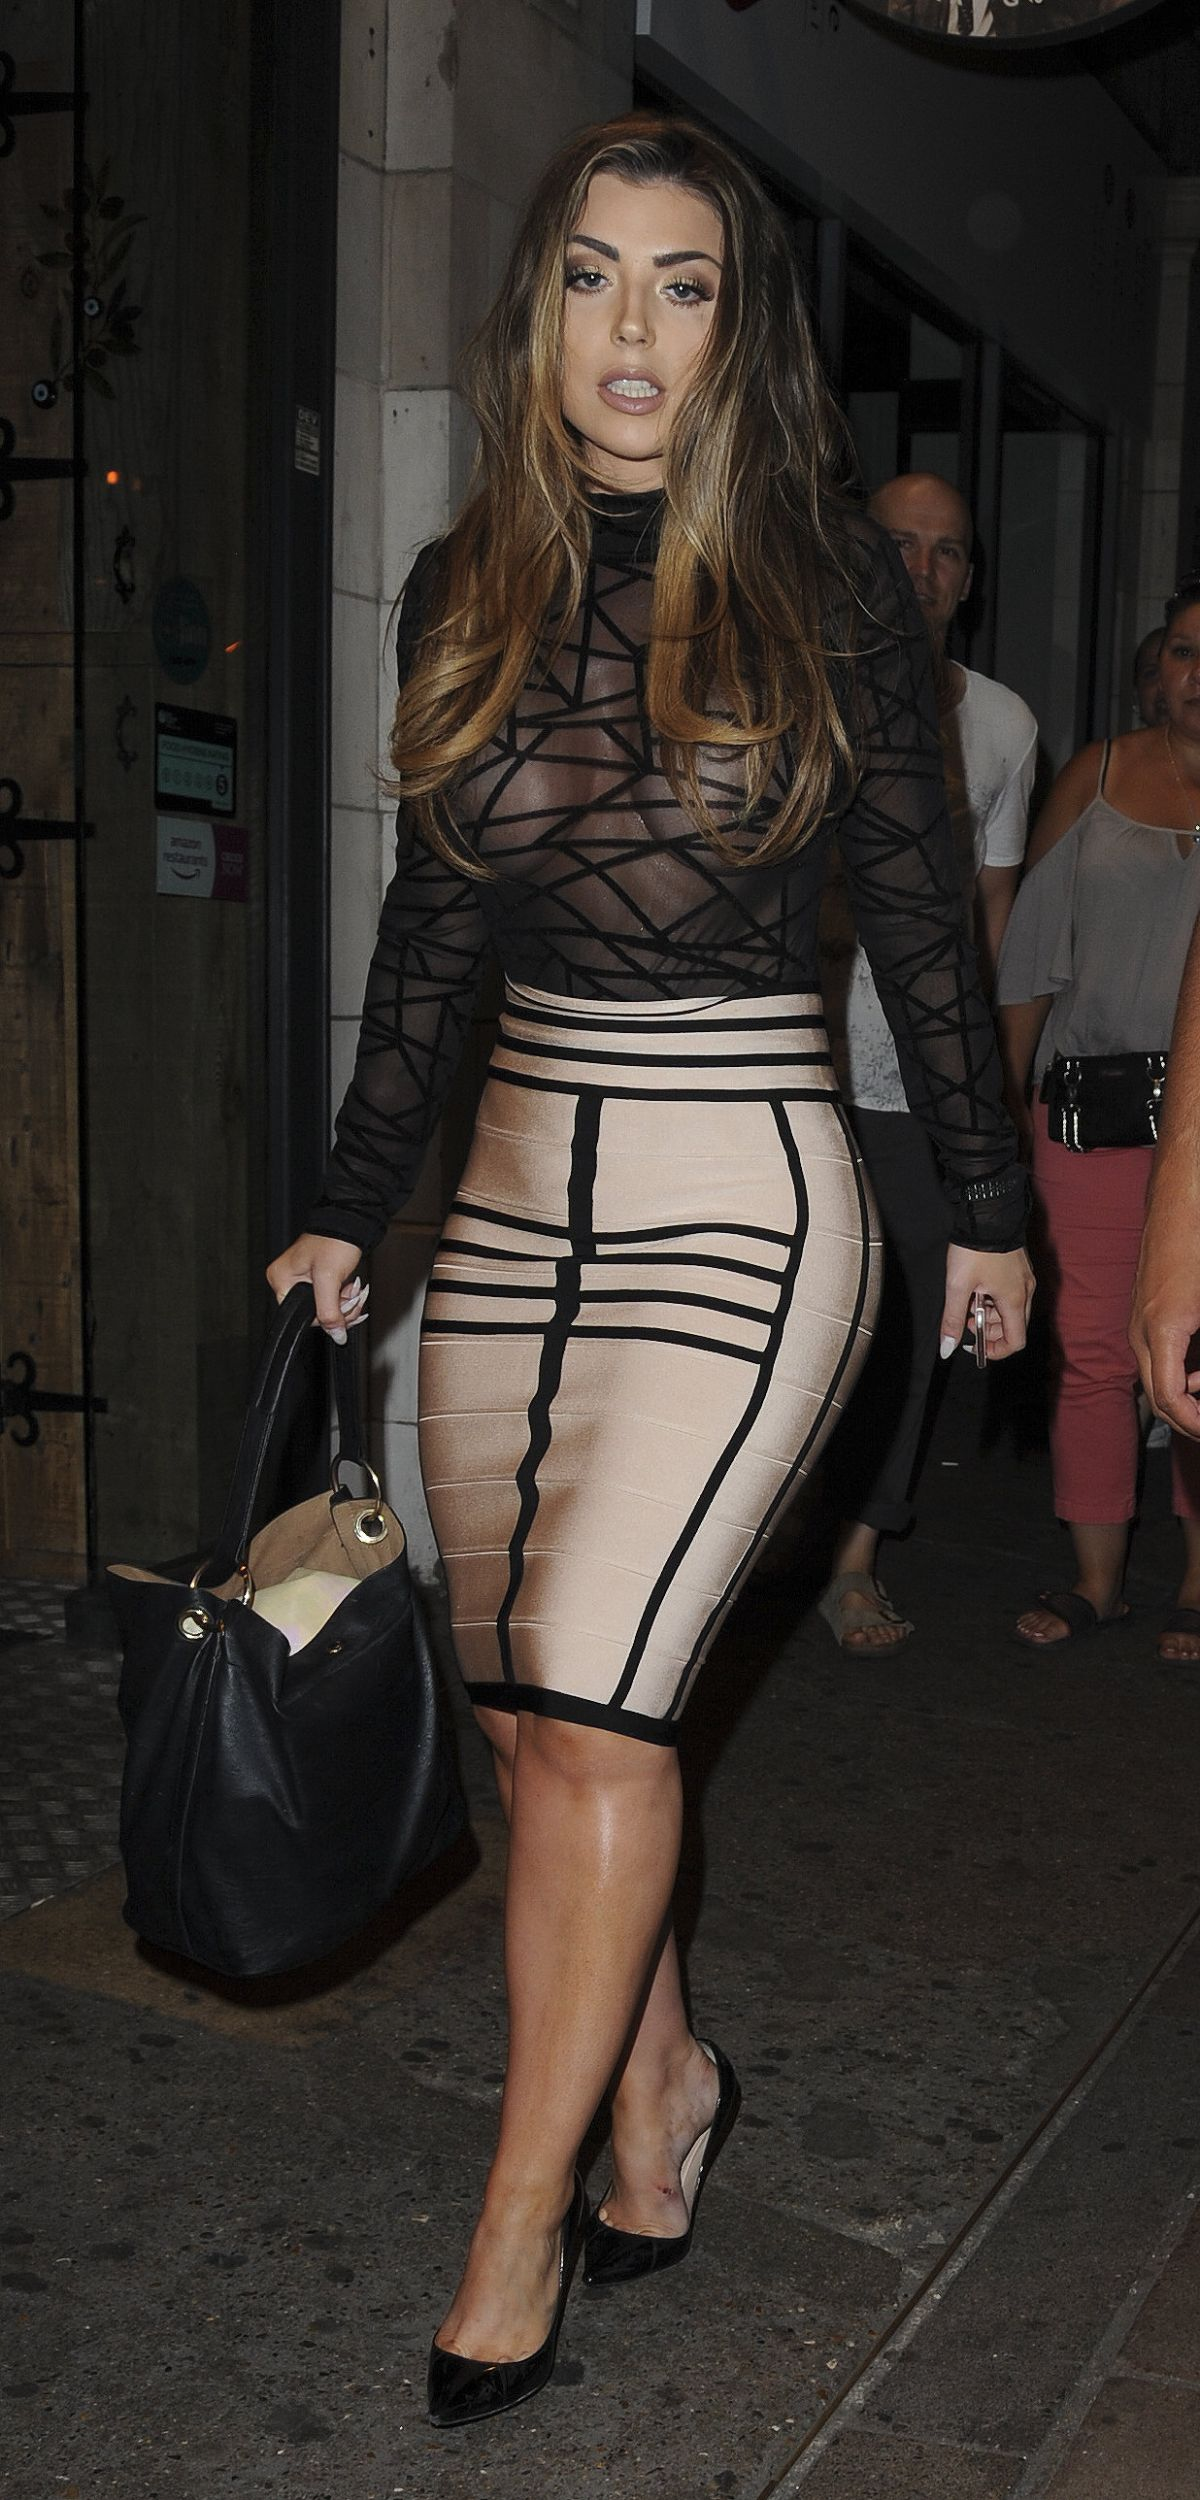 ABI CLARKE Arrives at Sixty6 Magazine Launch Party in